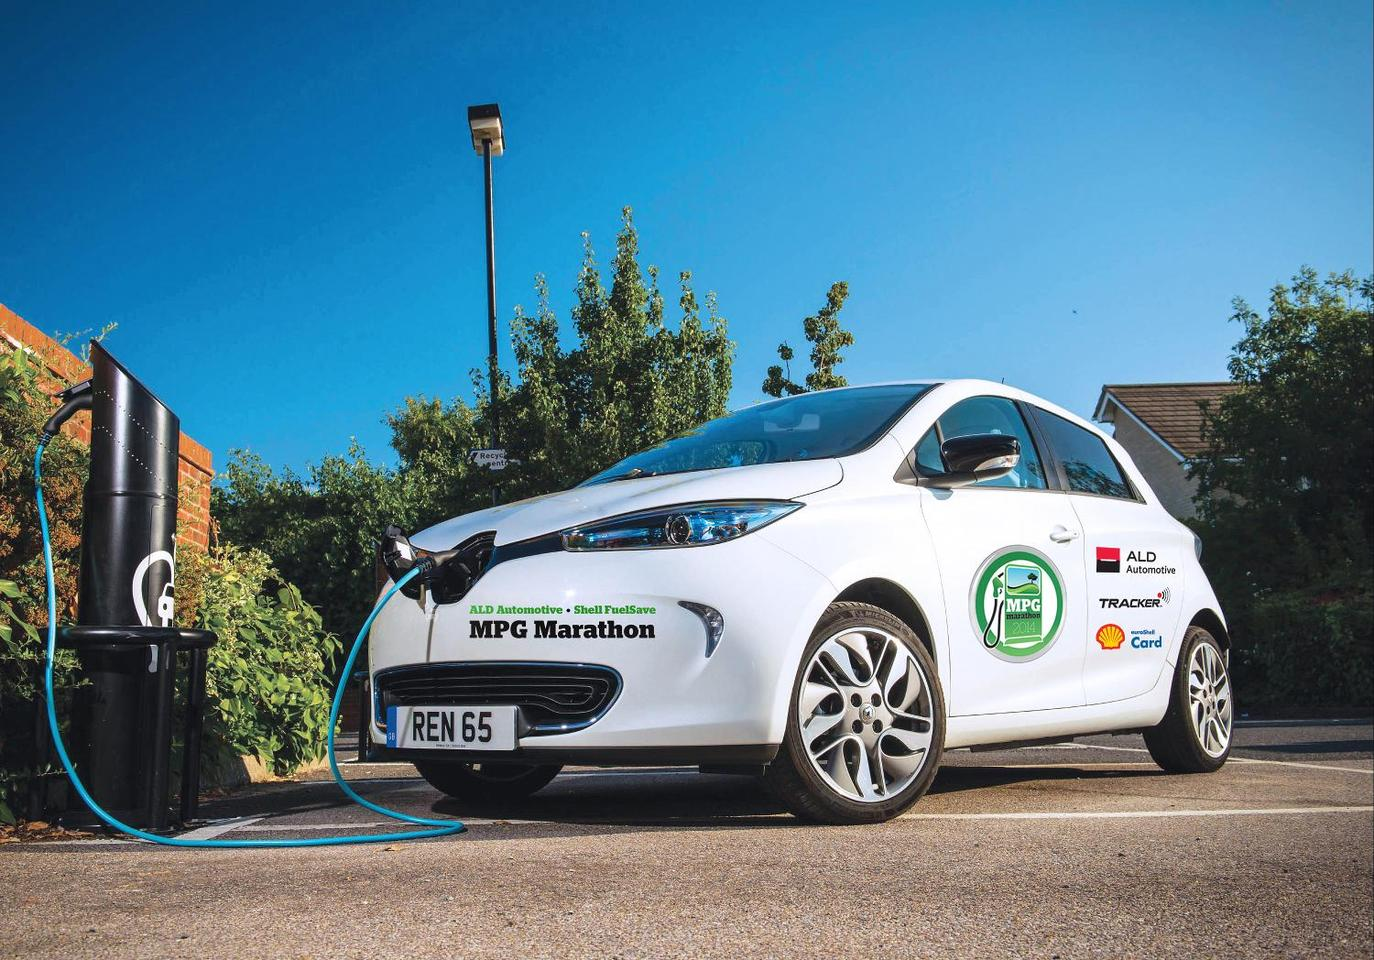 Pure electrics like the Renault Zoe will take part in the 2014 MPG Marathon